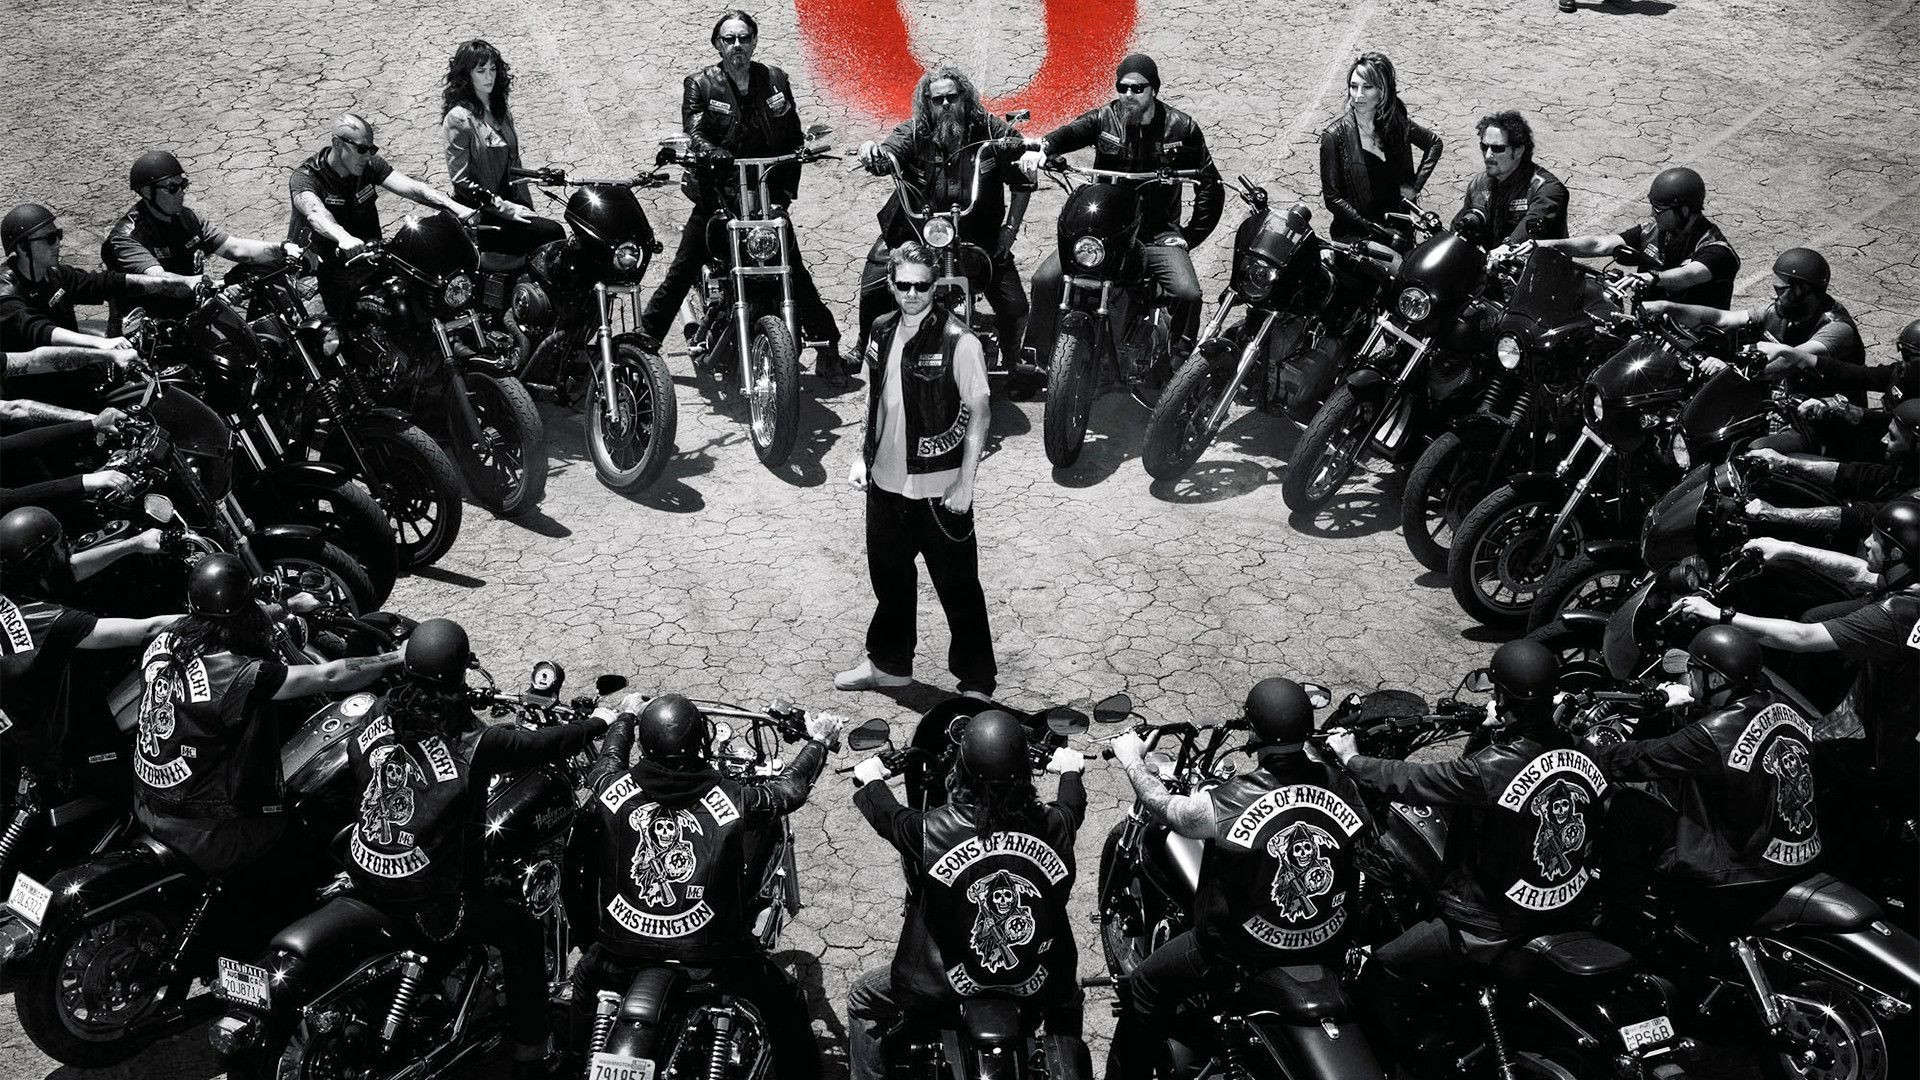 Sons Of Anarchy Wallpaper Download Free Hd Backgrounds For